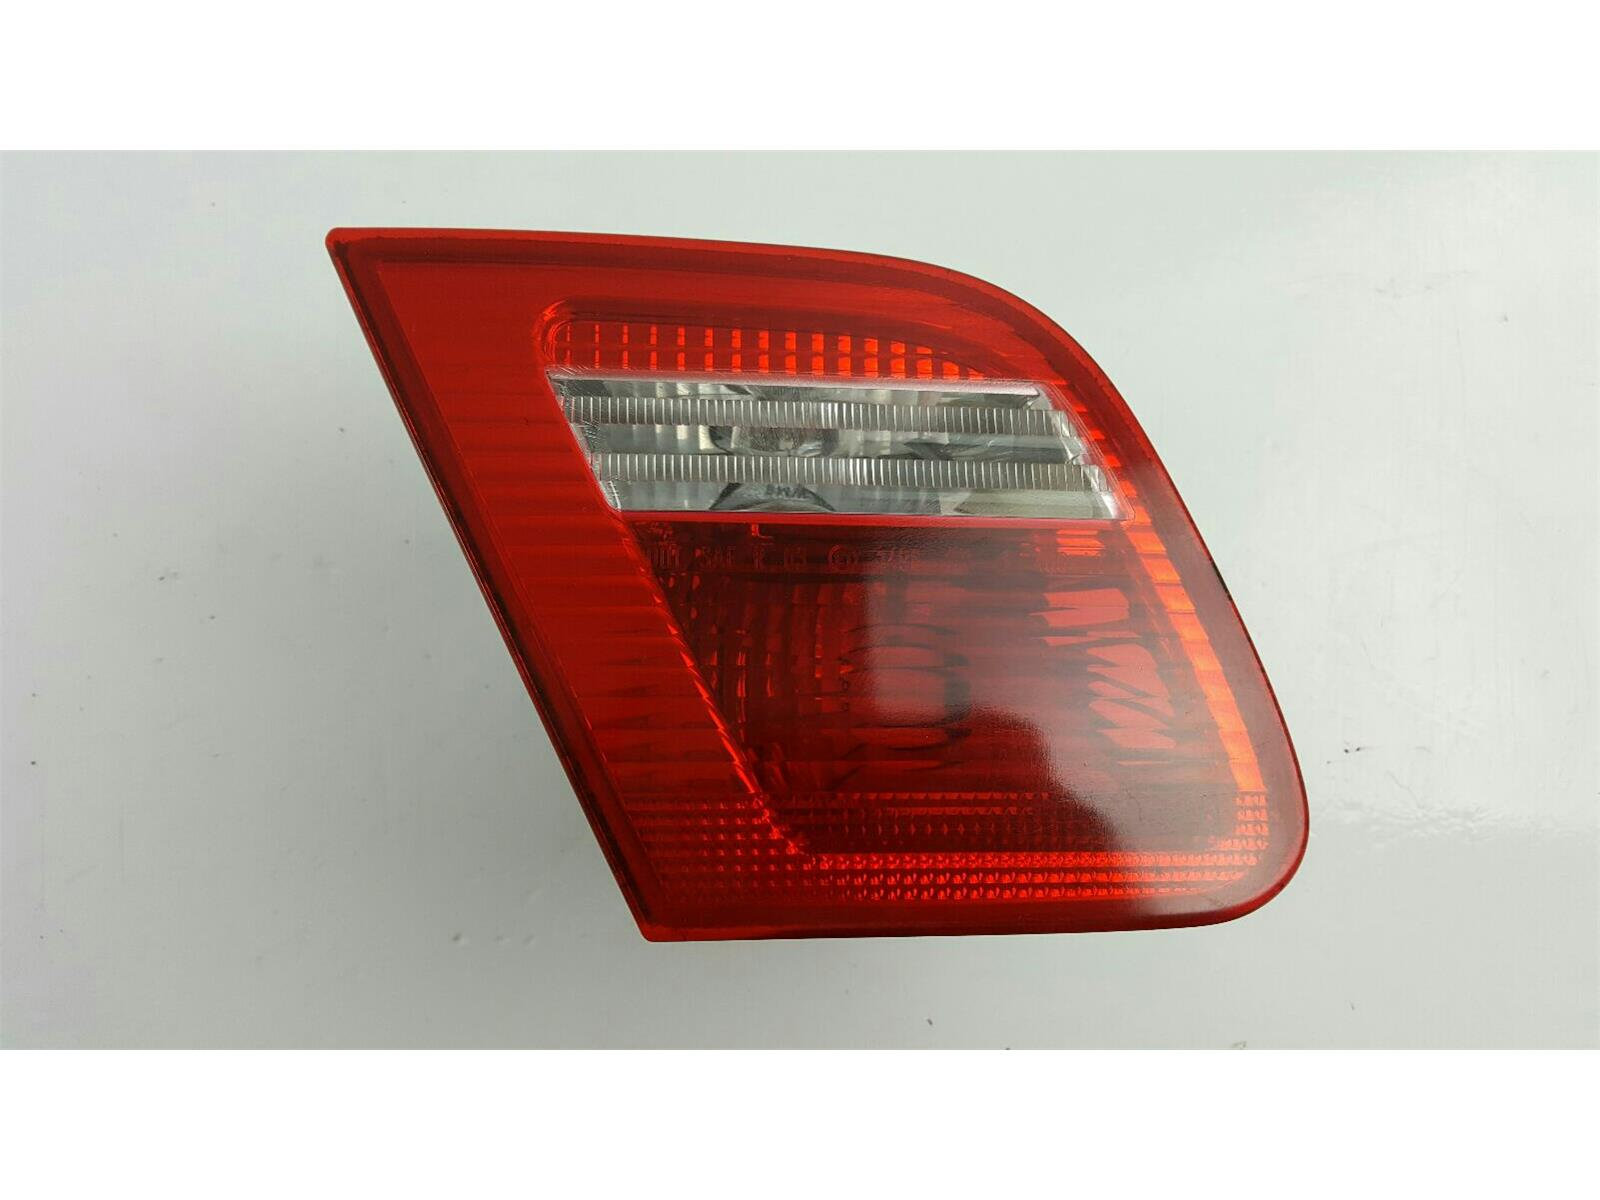 2003 E46 BMW 3 Series 318 Rear Inner Tail Light Lamp LH NS Passenger 63216920705